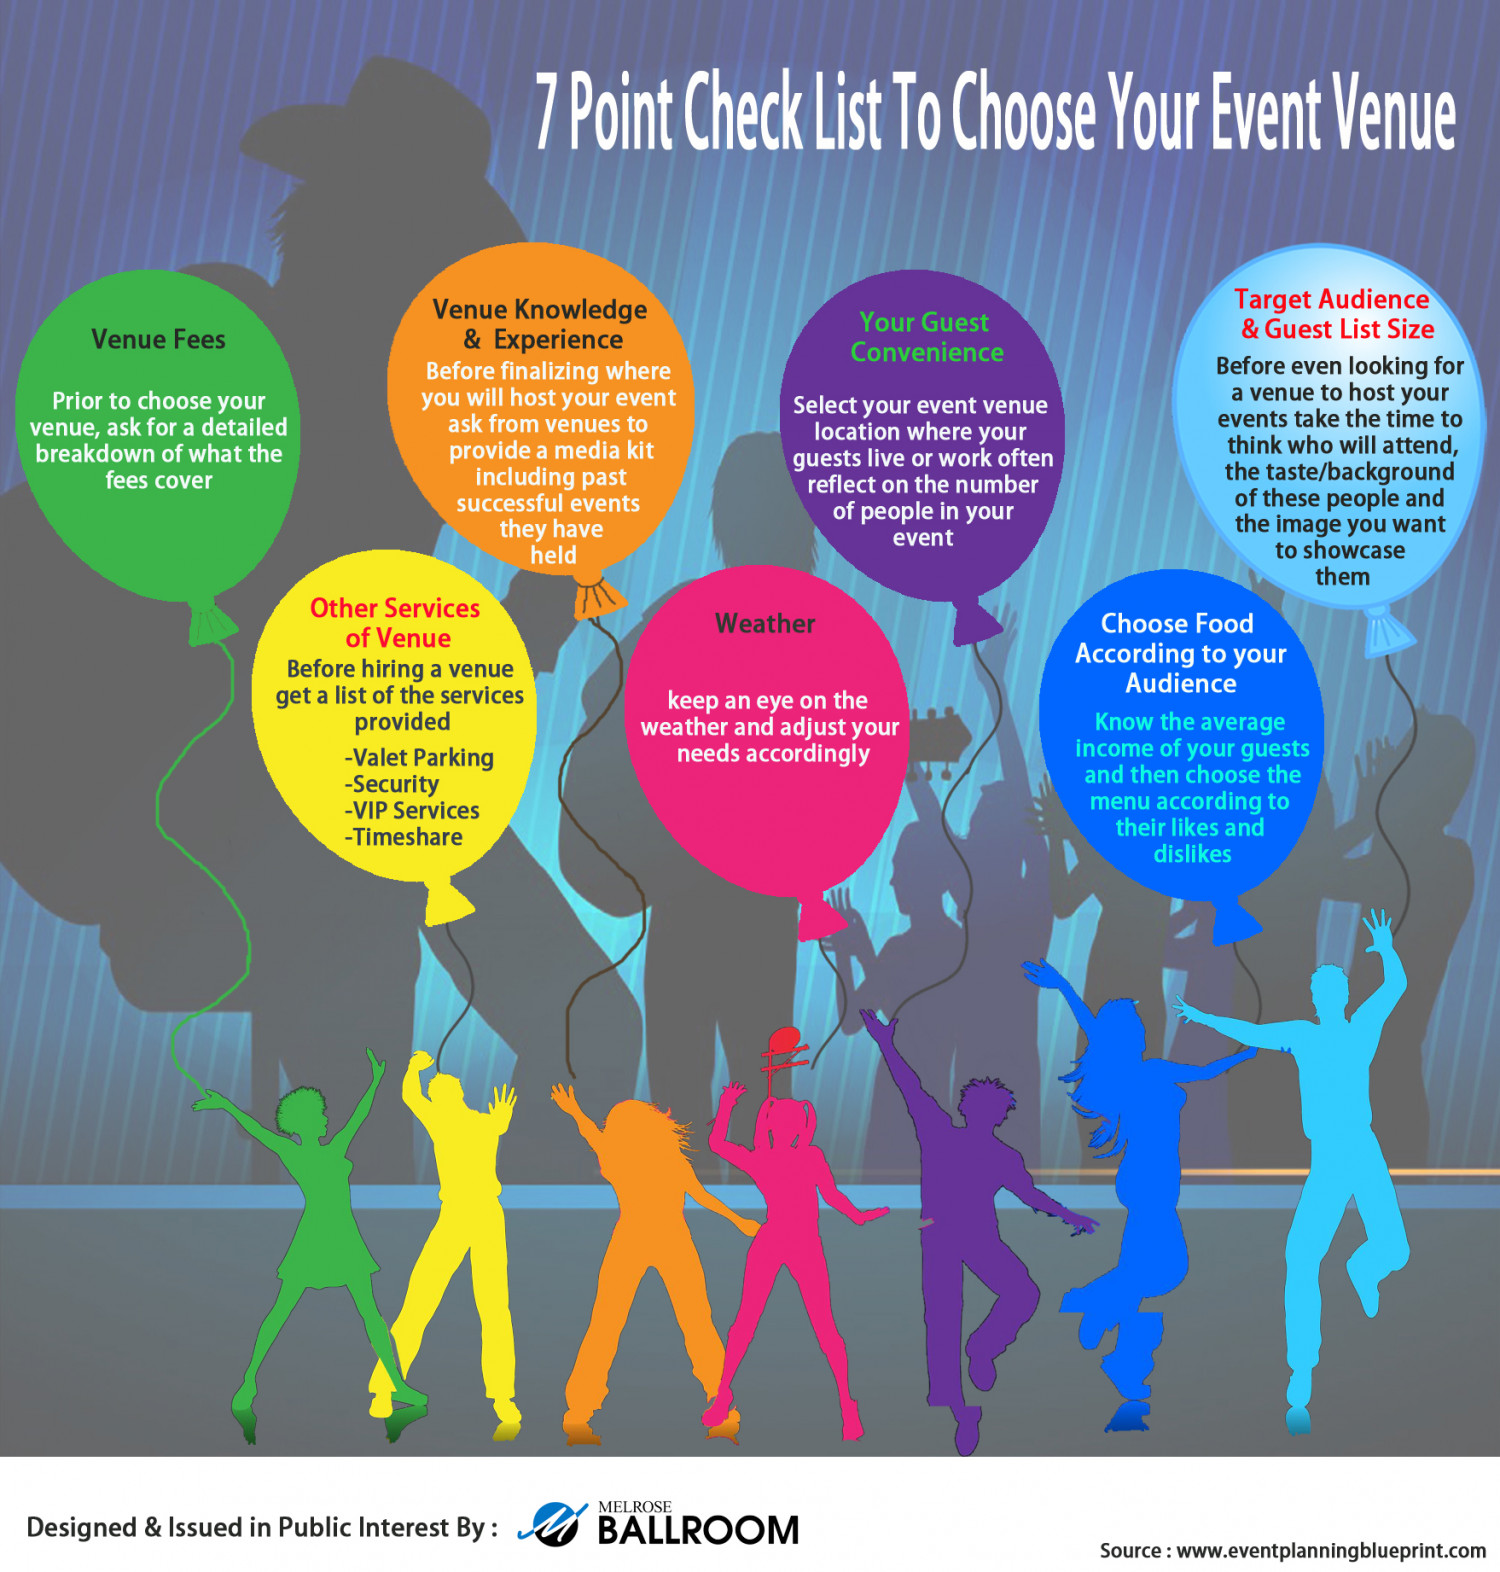 7 Point Check List to Choose Your event Venue Infographic